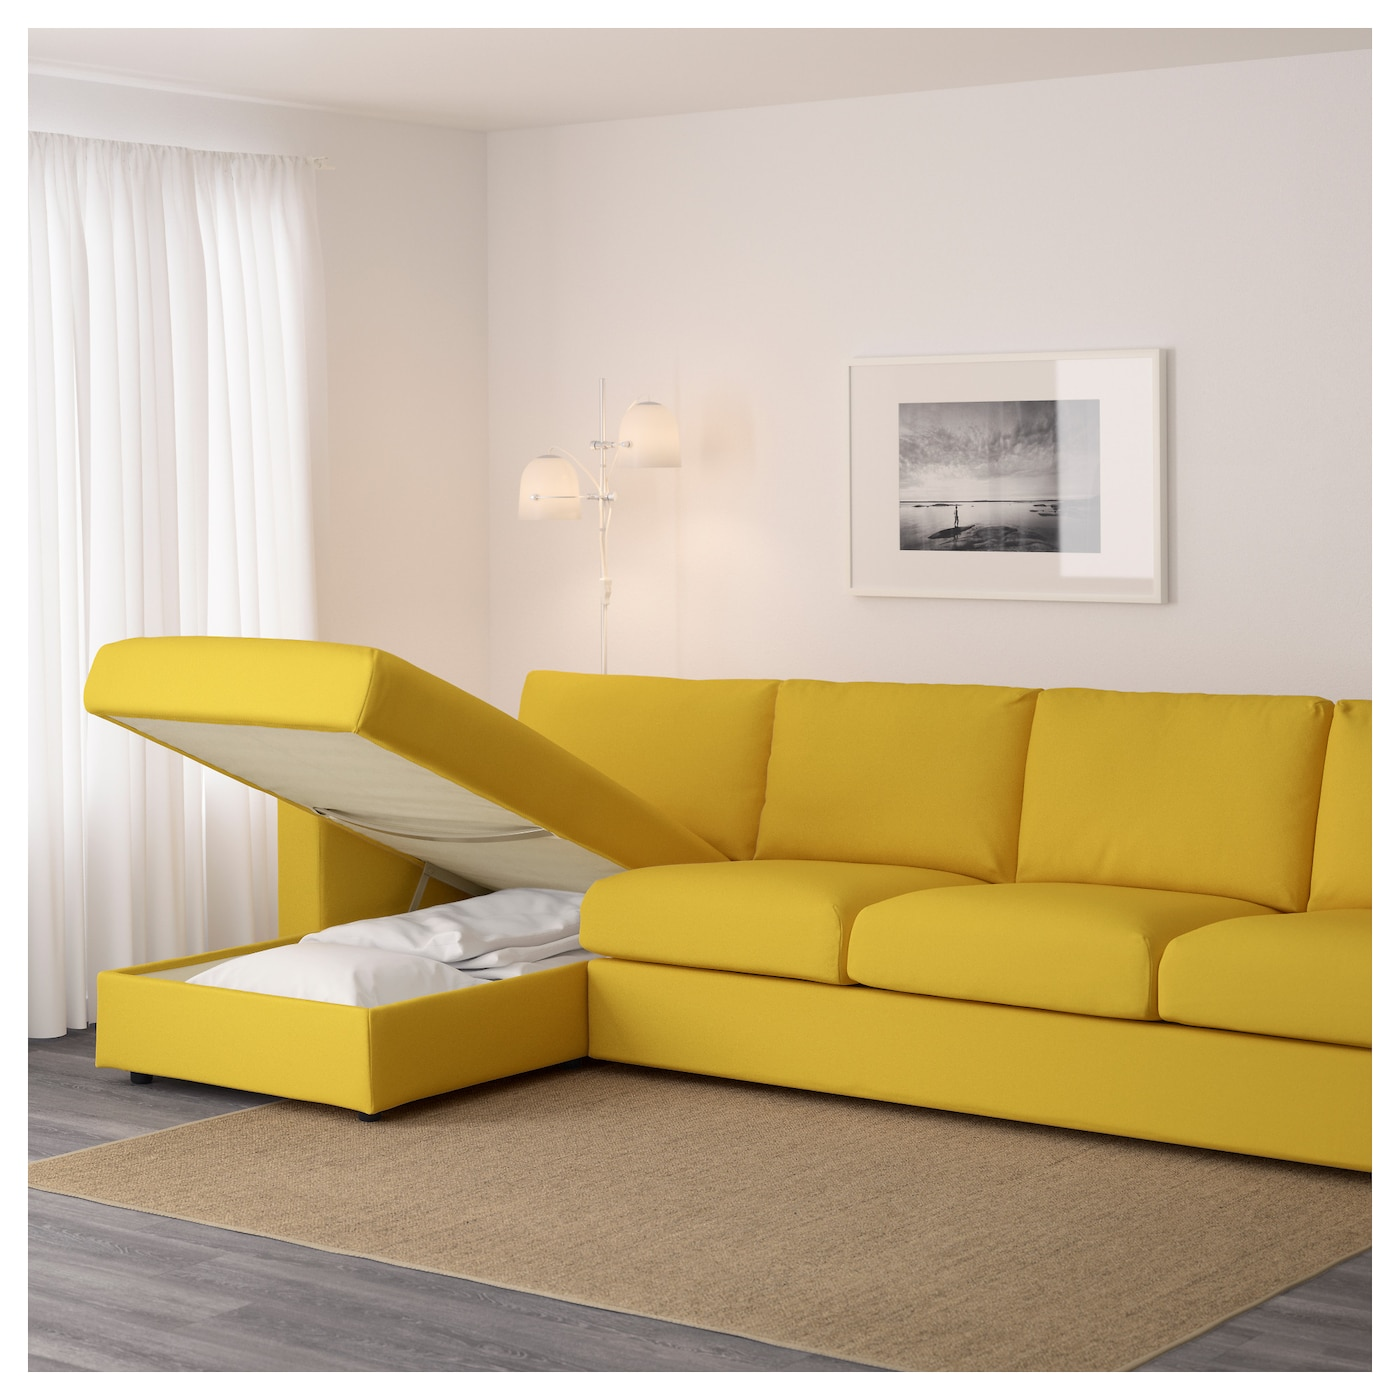 Ikea Vimle 4 Seat Sofa The Cover Is Easy To Keep